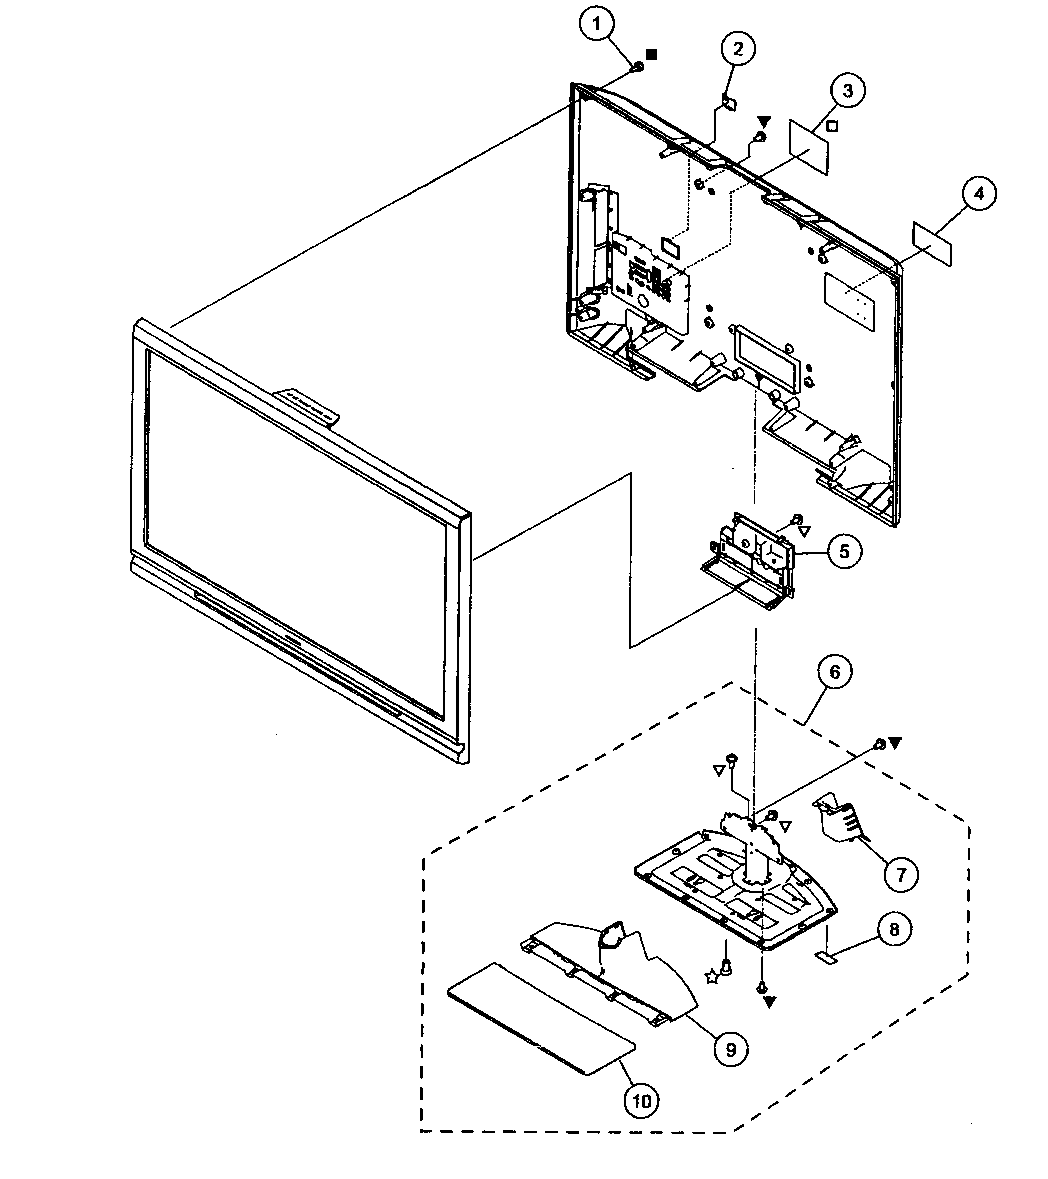 REAR COVER/STAND ASSY Diagram & Parts List for Model